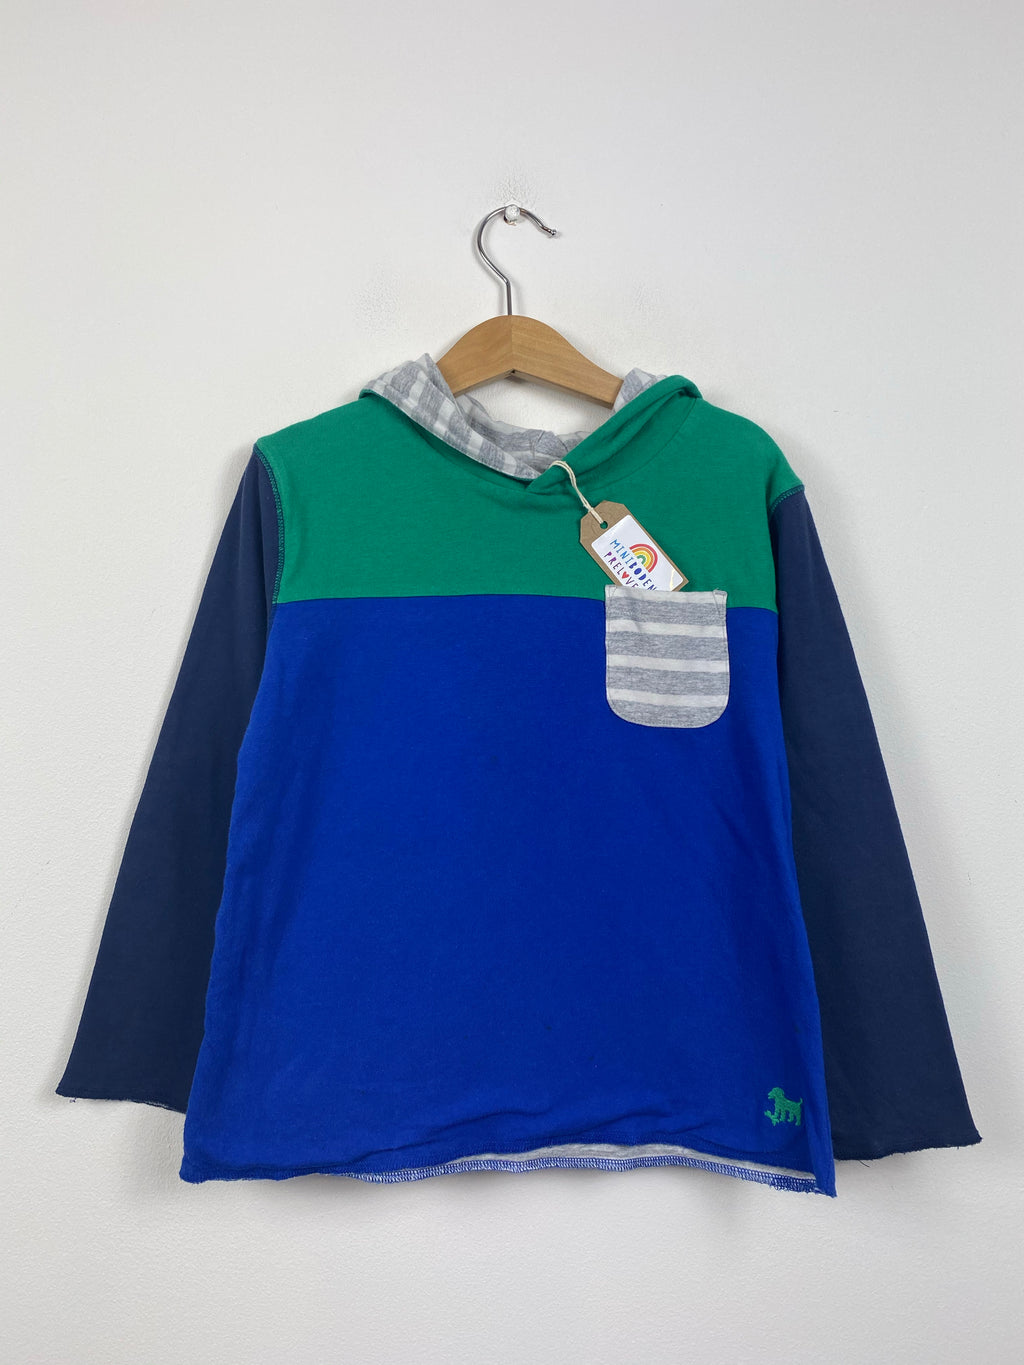 Hooded Blue and Green Lightweight Reversible Top (5-6 Years)